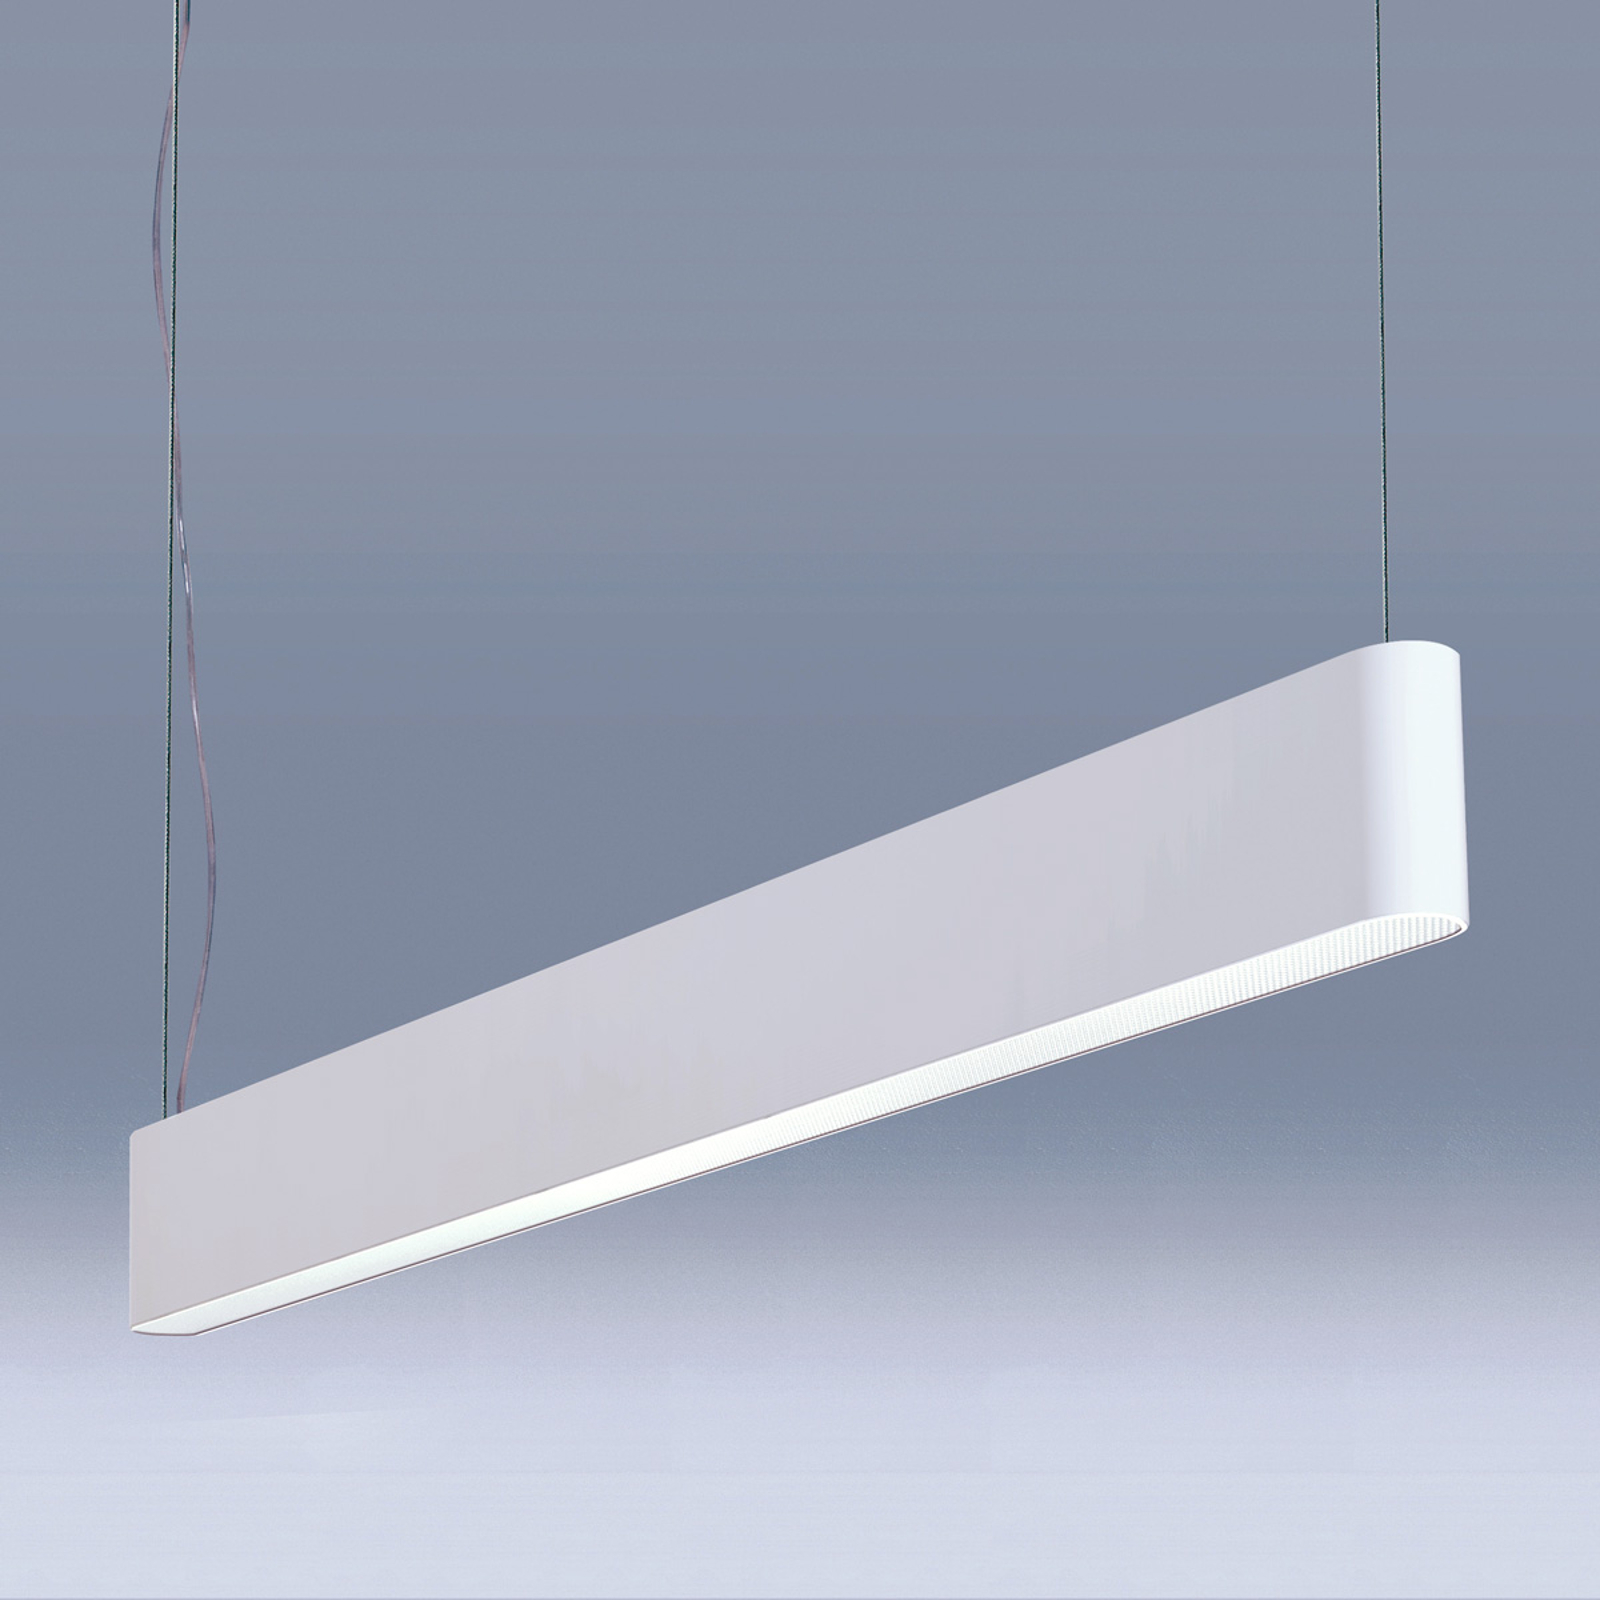 Suspension LED Caleo-P4 blanche - 147,5 cm 76W